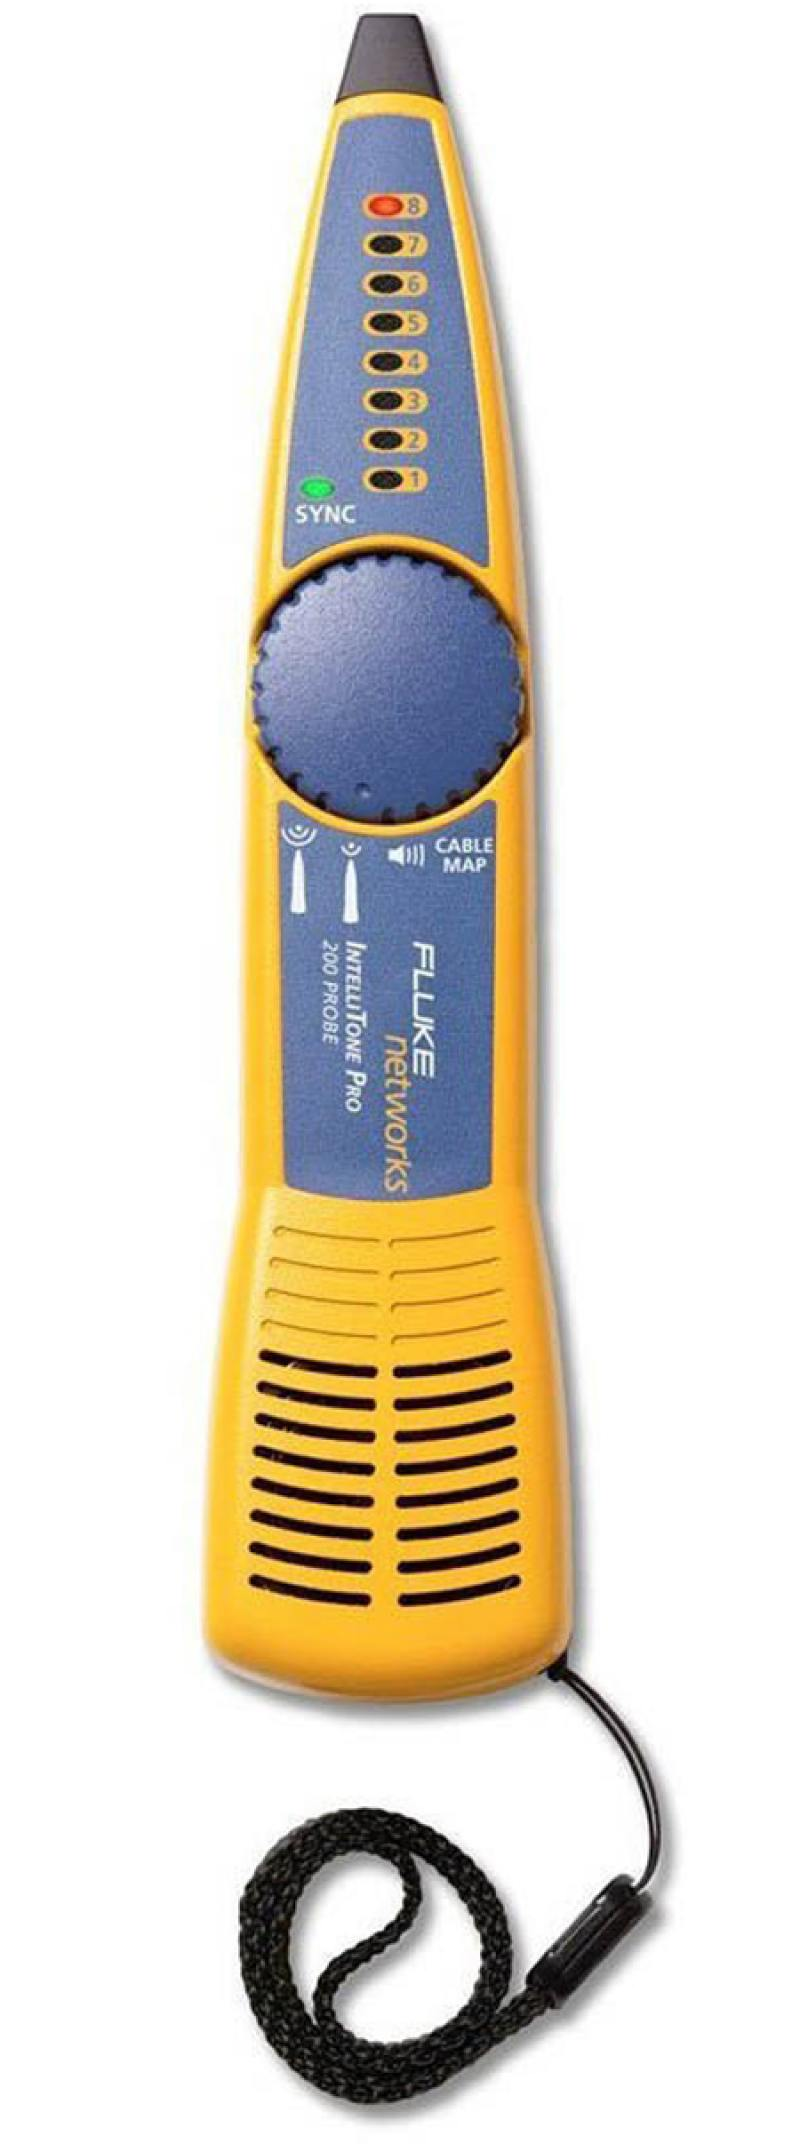 Набор для трассировки кабелей Fluke MT-8200-63A IntelliTone 200 Probe elecall a 18 j pvc needle tip probe test leads pin hot universal digital multimeter multi meter tester lead probe wire pen cable